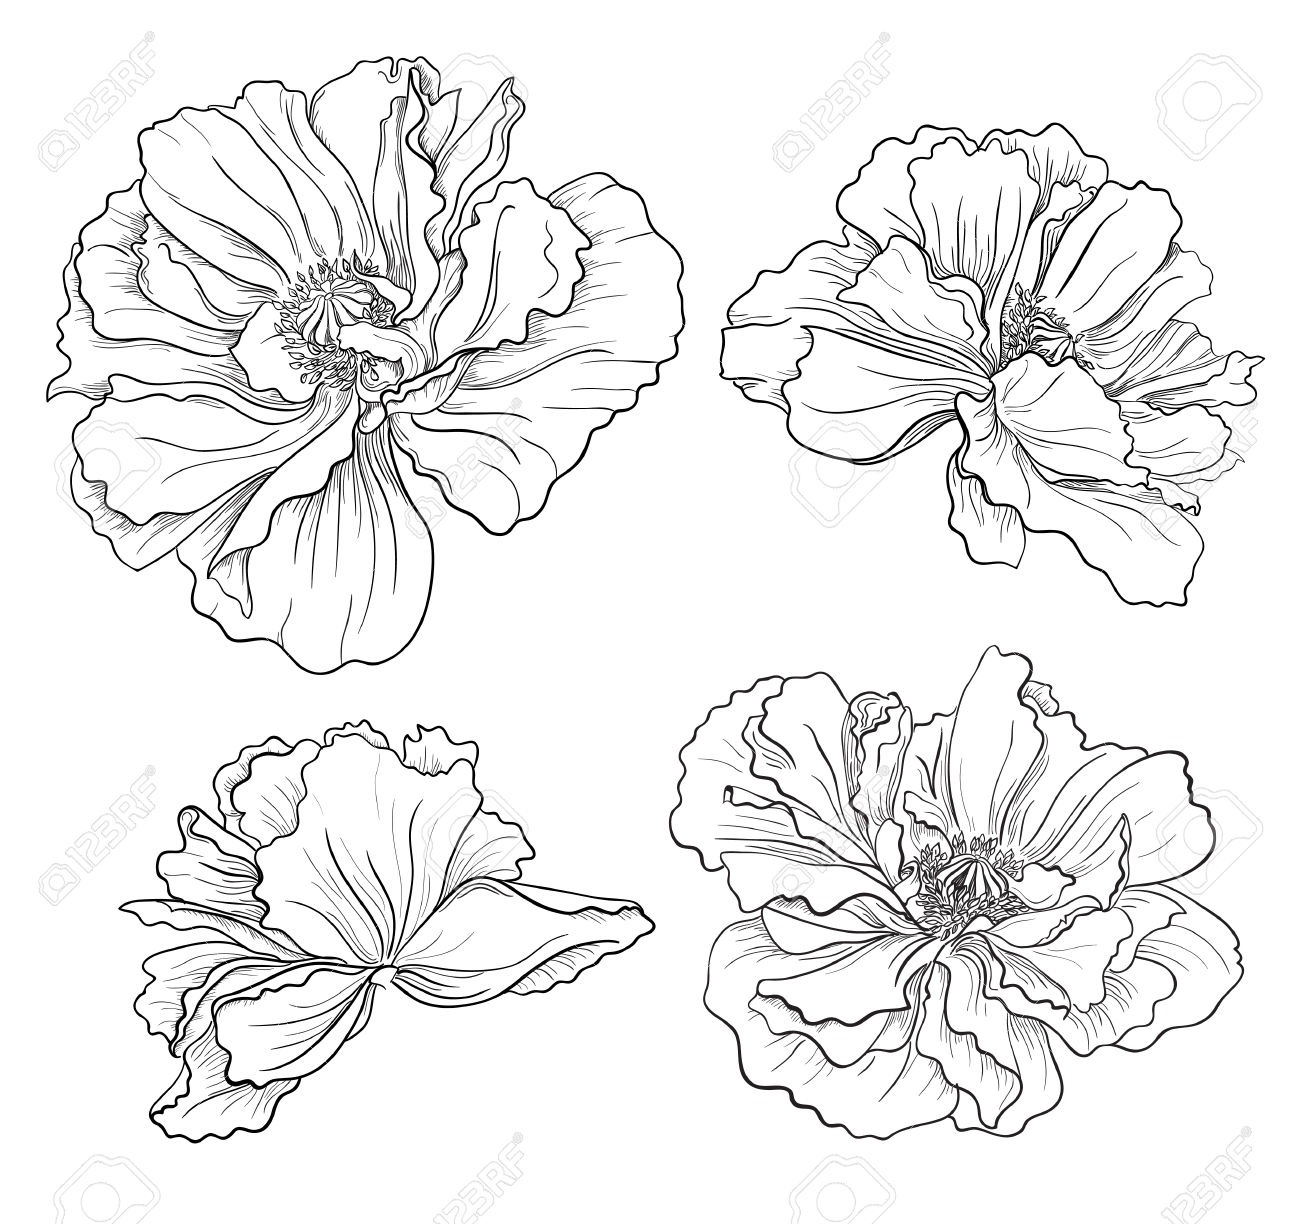 Drawn poppy hand drawn Poppies And Vectors 23350279 Vectors